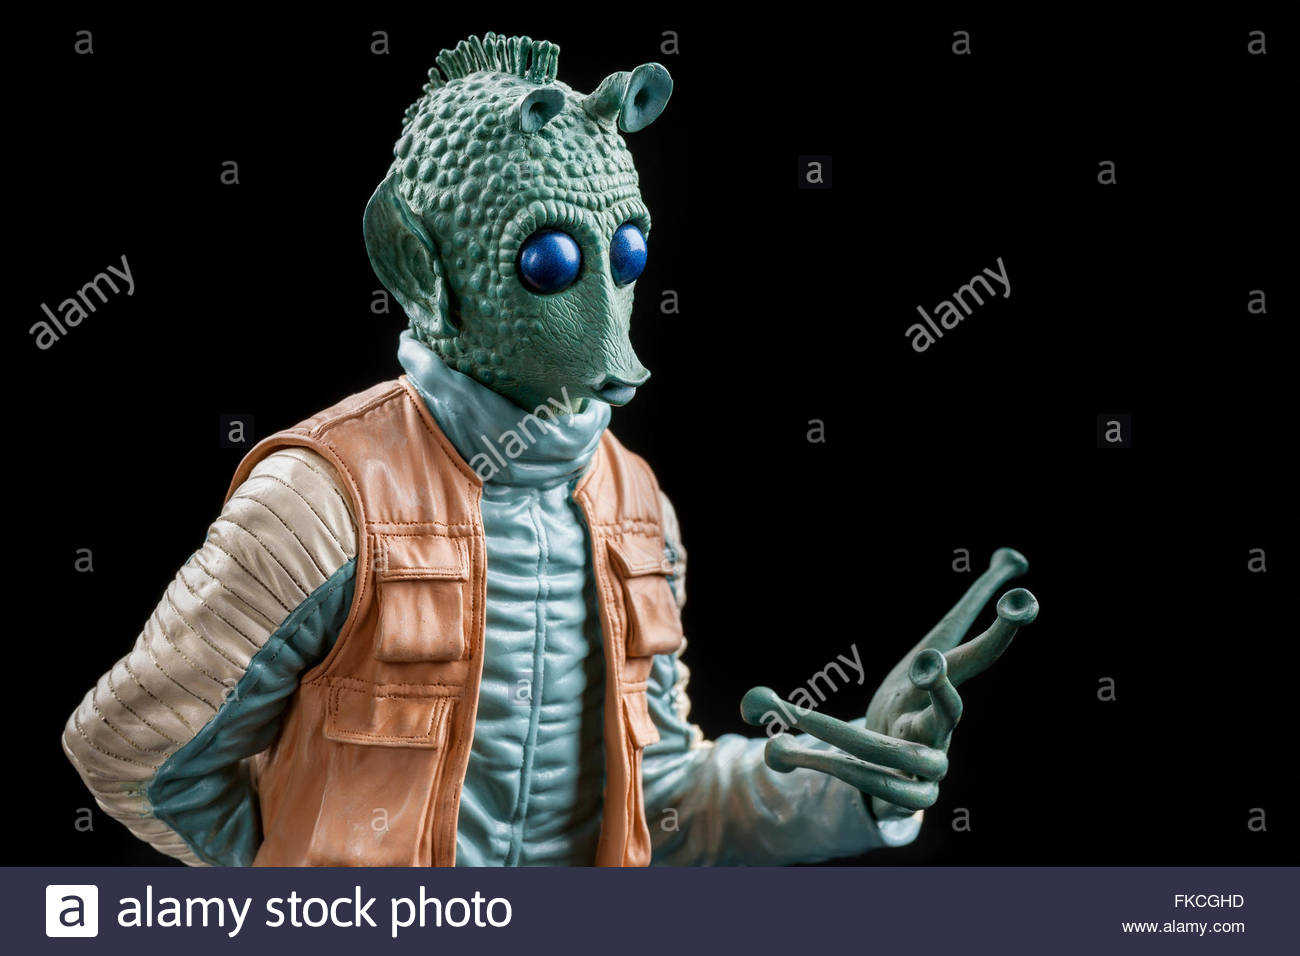 star-wars-bounty-hunter-greedo-limited-edition-bust-by-gentle-giant-FKCGHD.jpg